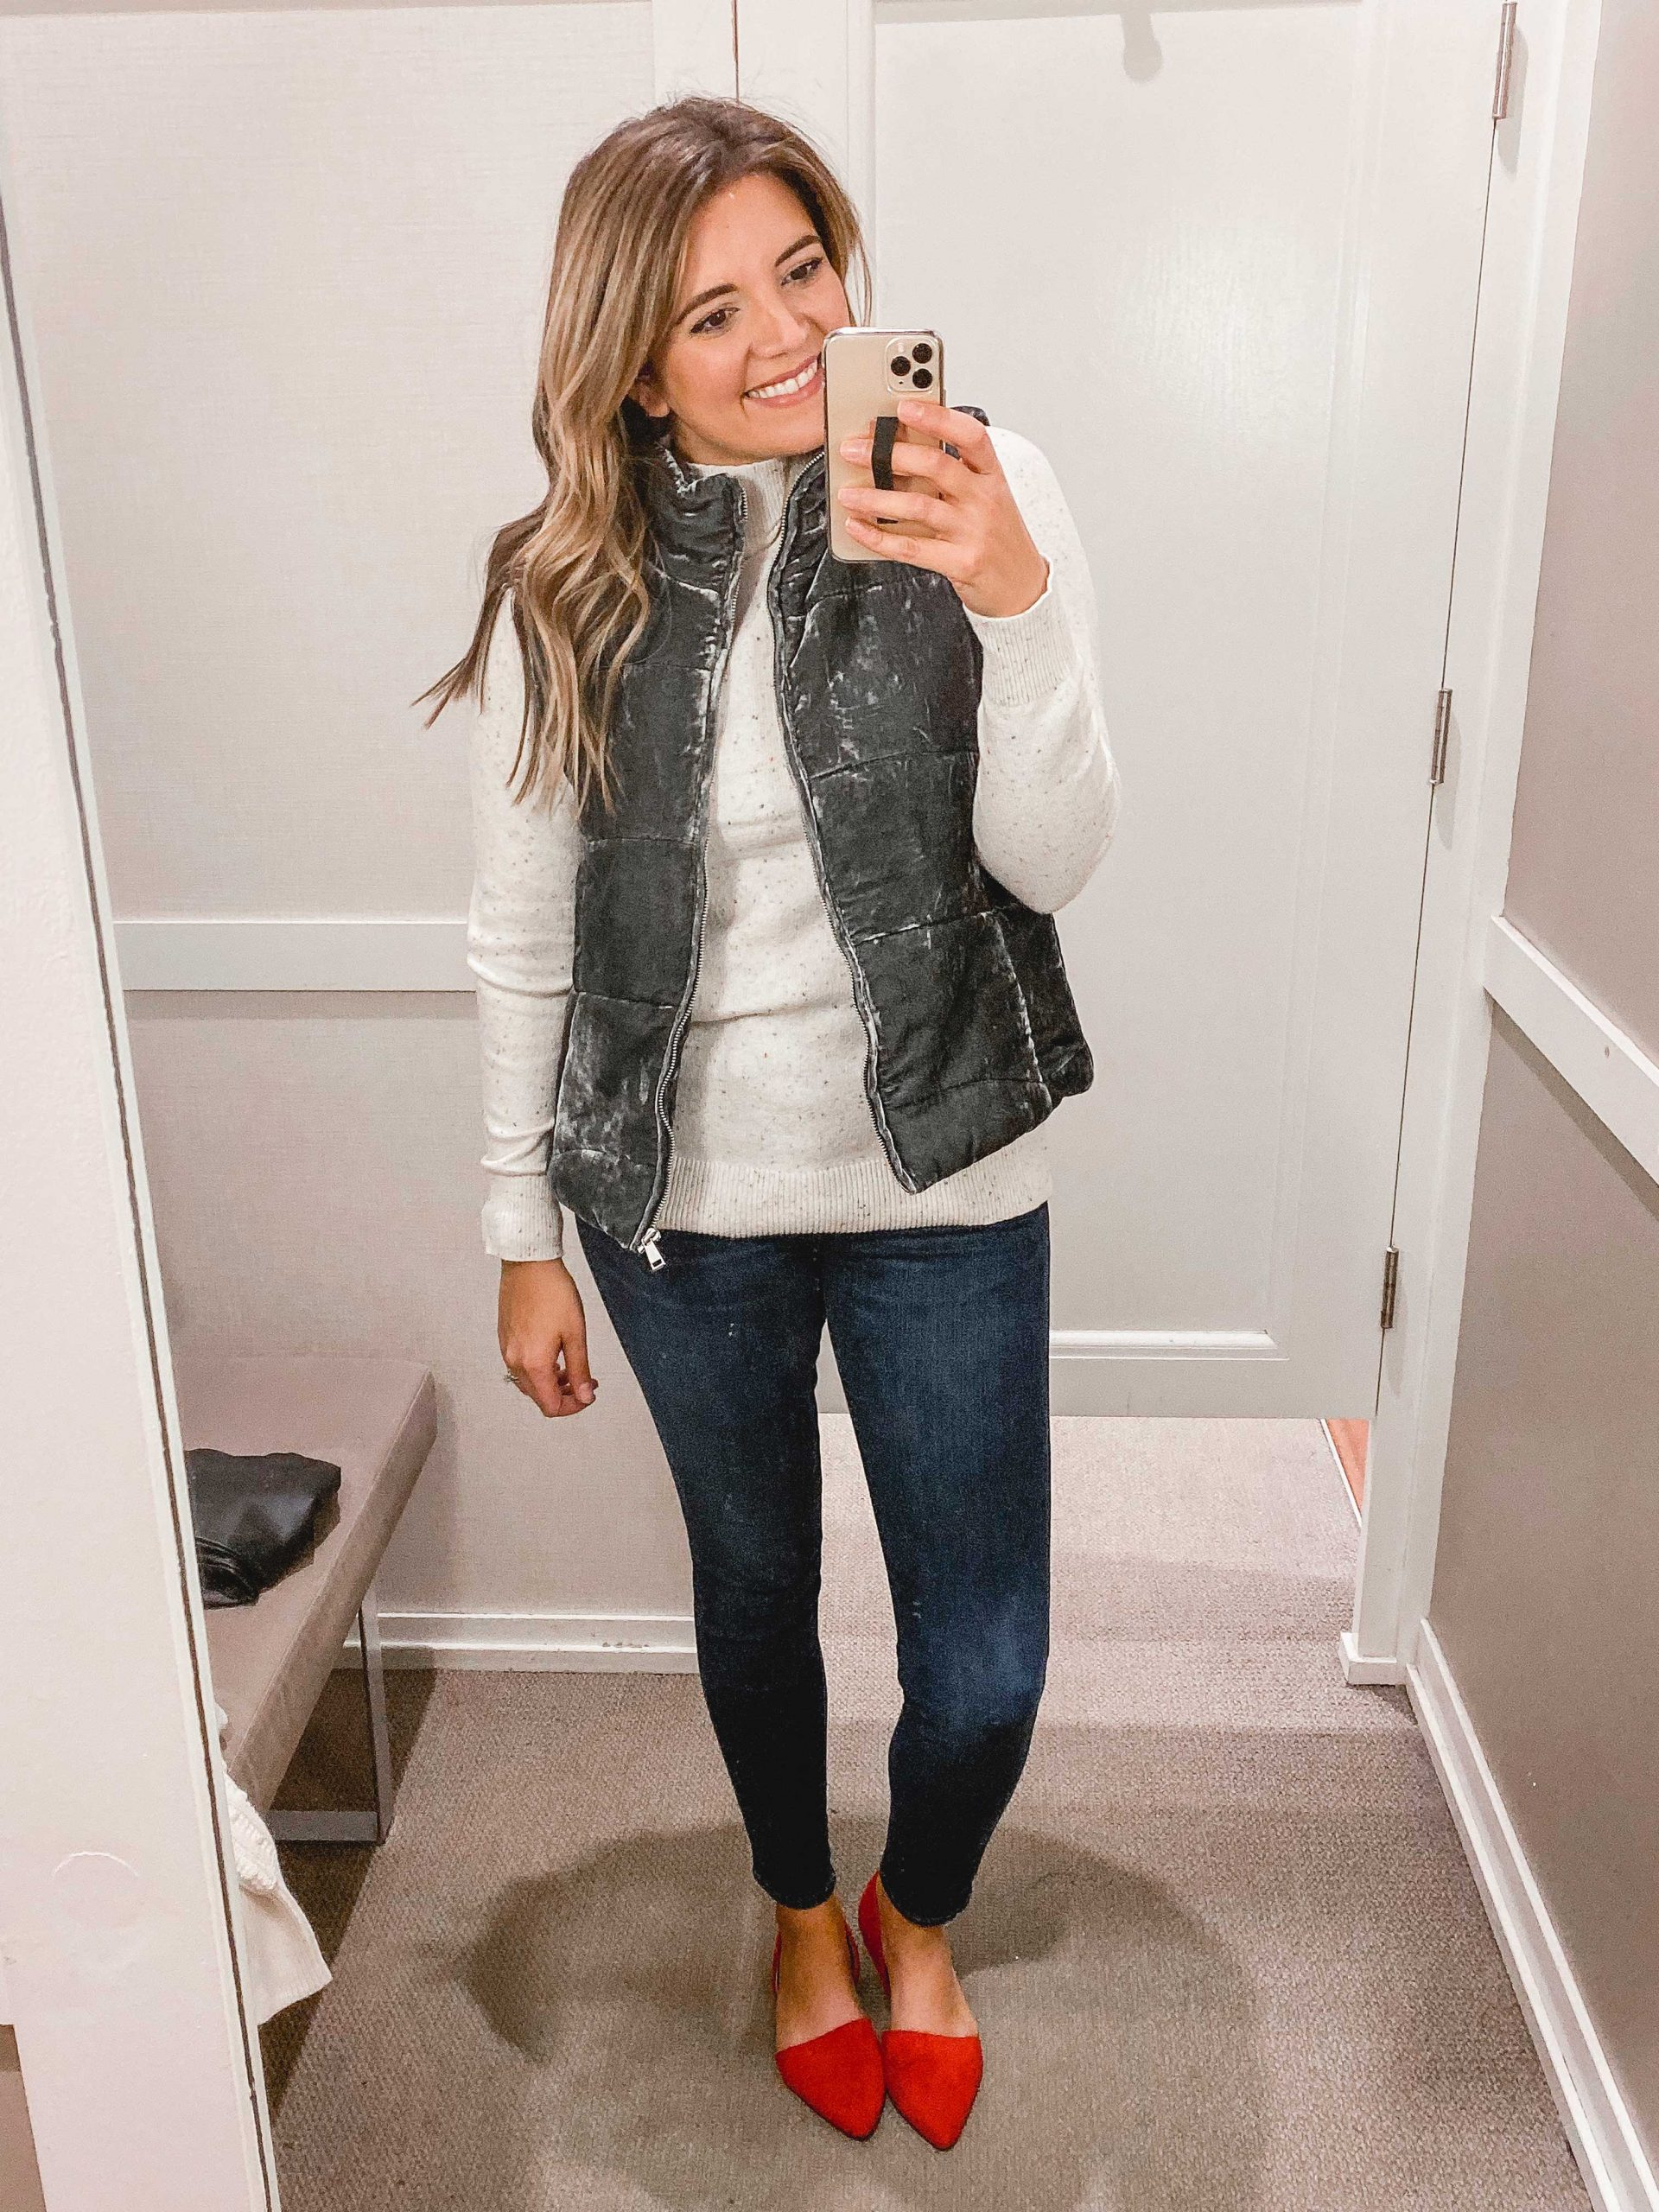 Virginia blogger, Lauren Dix, shares over 10 of her favorite winter Loft clothing finds in this winter loft try on session!